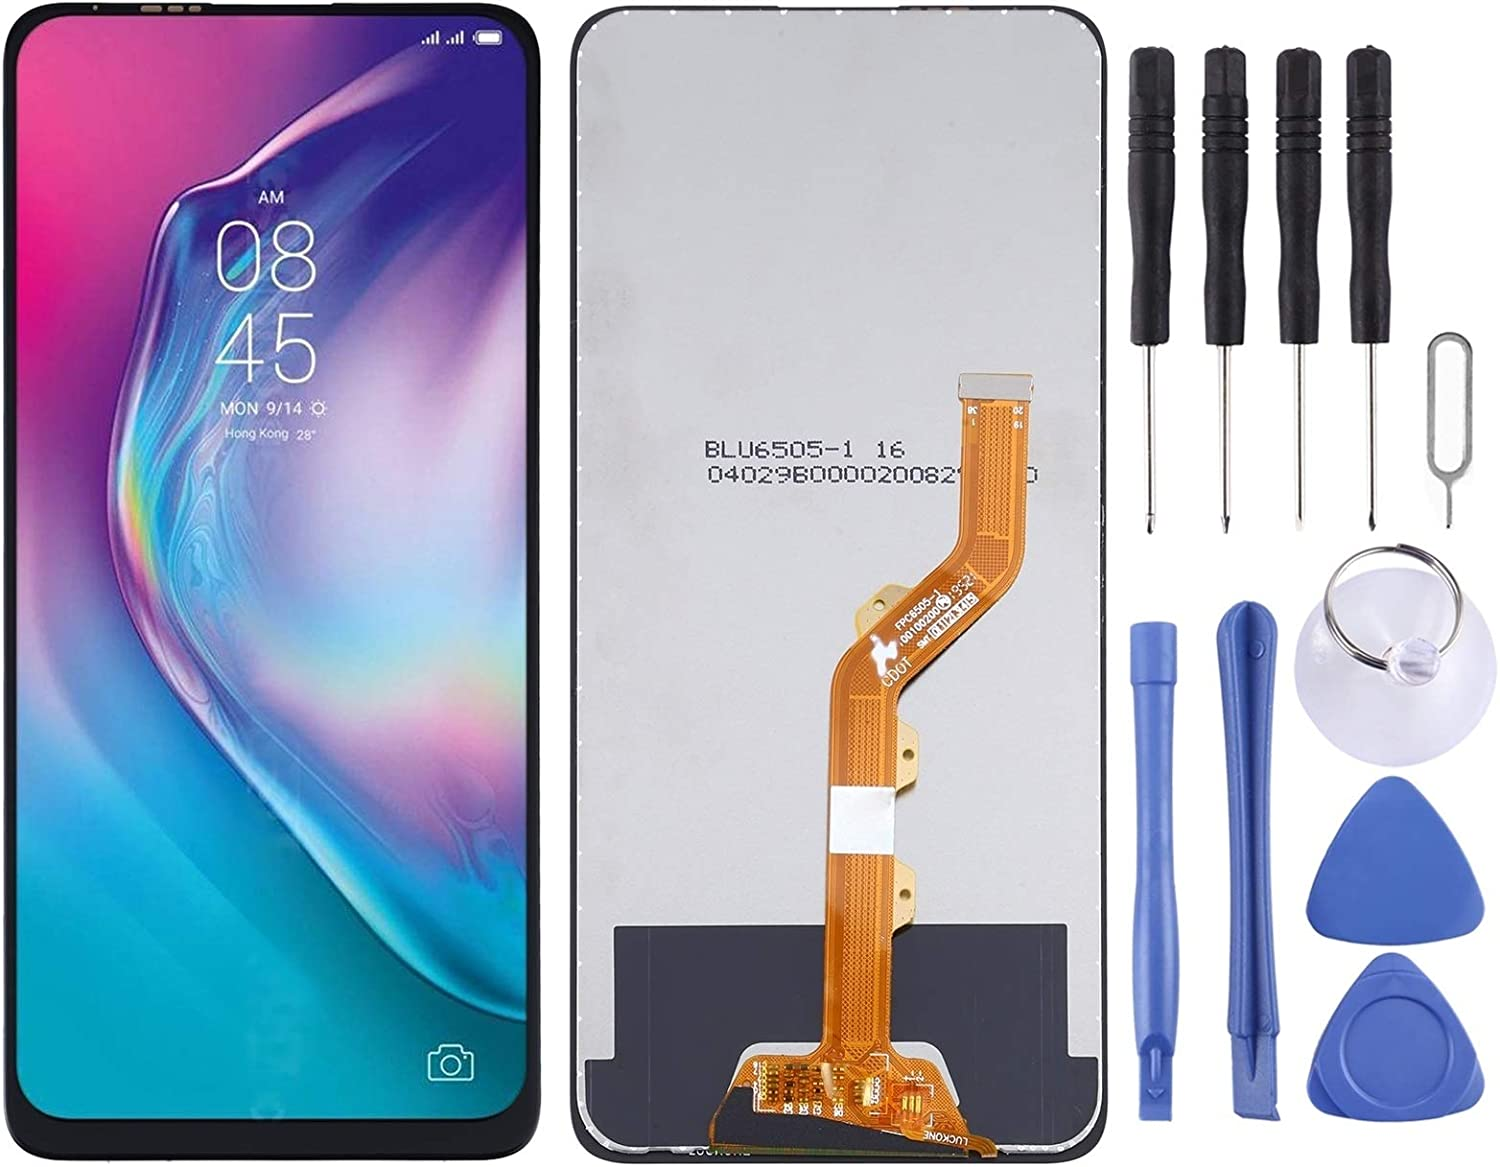 CathyHan CD8j LCD Screen Fashion and 1 year warranty Tecno Digitizer Assembly for Total